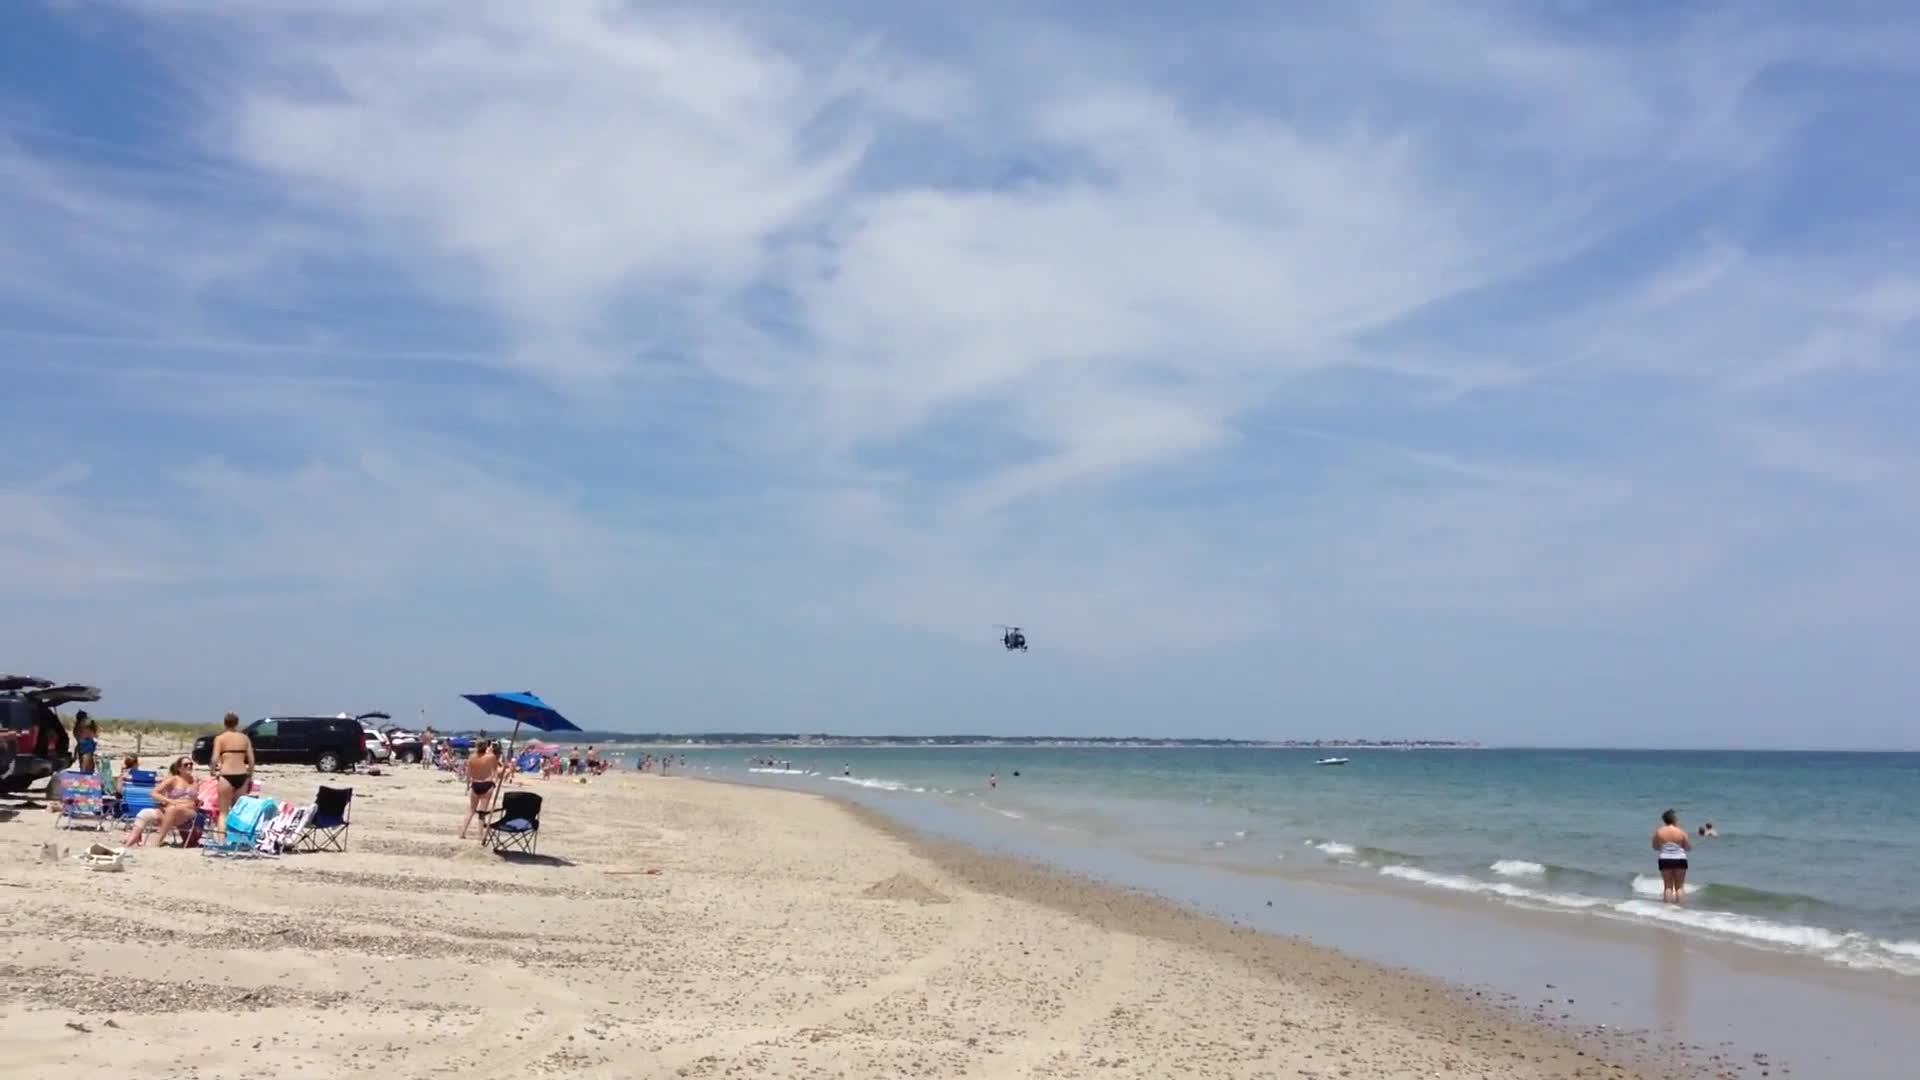 LOW FLY BREACHING IS A POLITICAL OBJECTIVE. G-BDKH  (ROBIN KEITH GRIGGS) BUZZES ME GROUND LEVEL UNSAFE FLY REPORTED